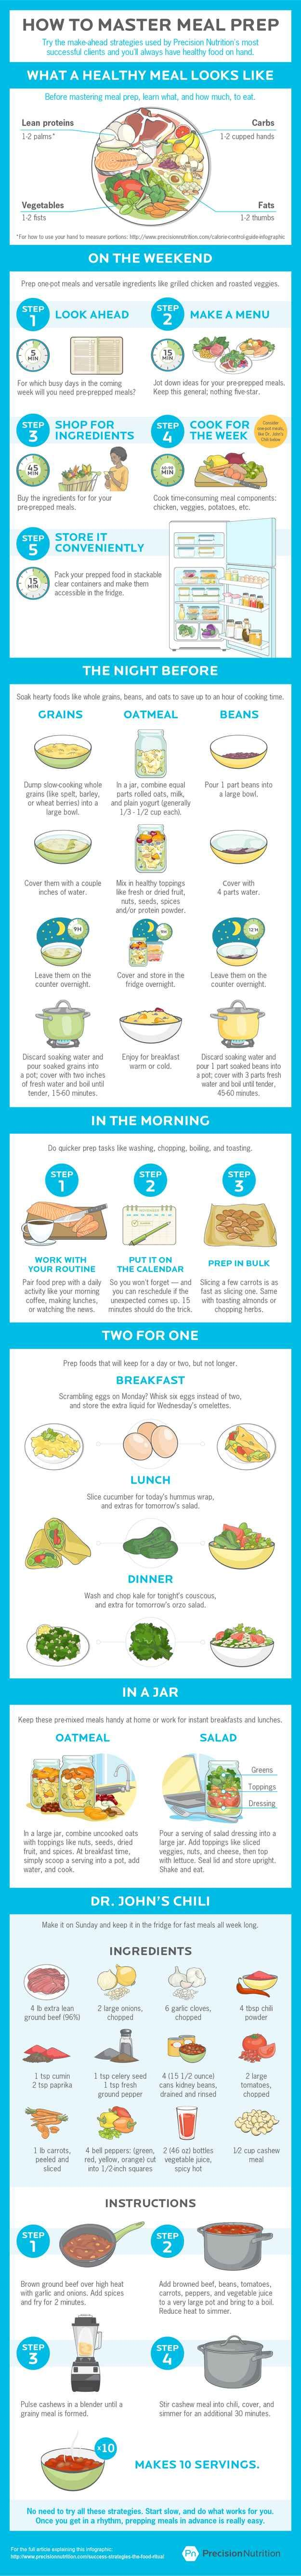 Learn exactly how to meal prep in the healthiest, easiest way possible.